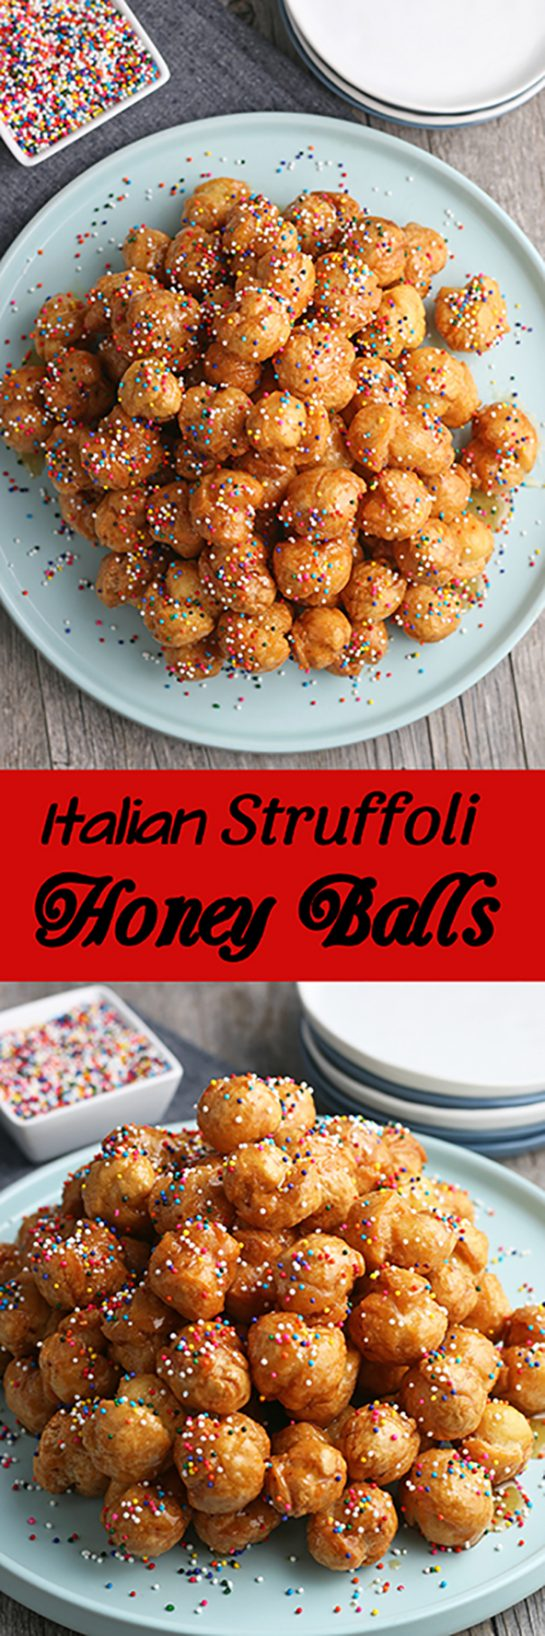 My struffoli recipe is a tasty holiday dessert! Struffoli are Italian honey balls, small crunchy balls of dough mixed with honey and candy toppings. Check out how easy it is to make this classic dessert recipe.